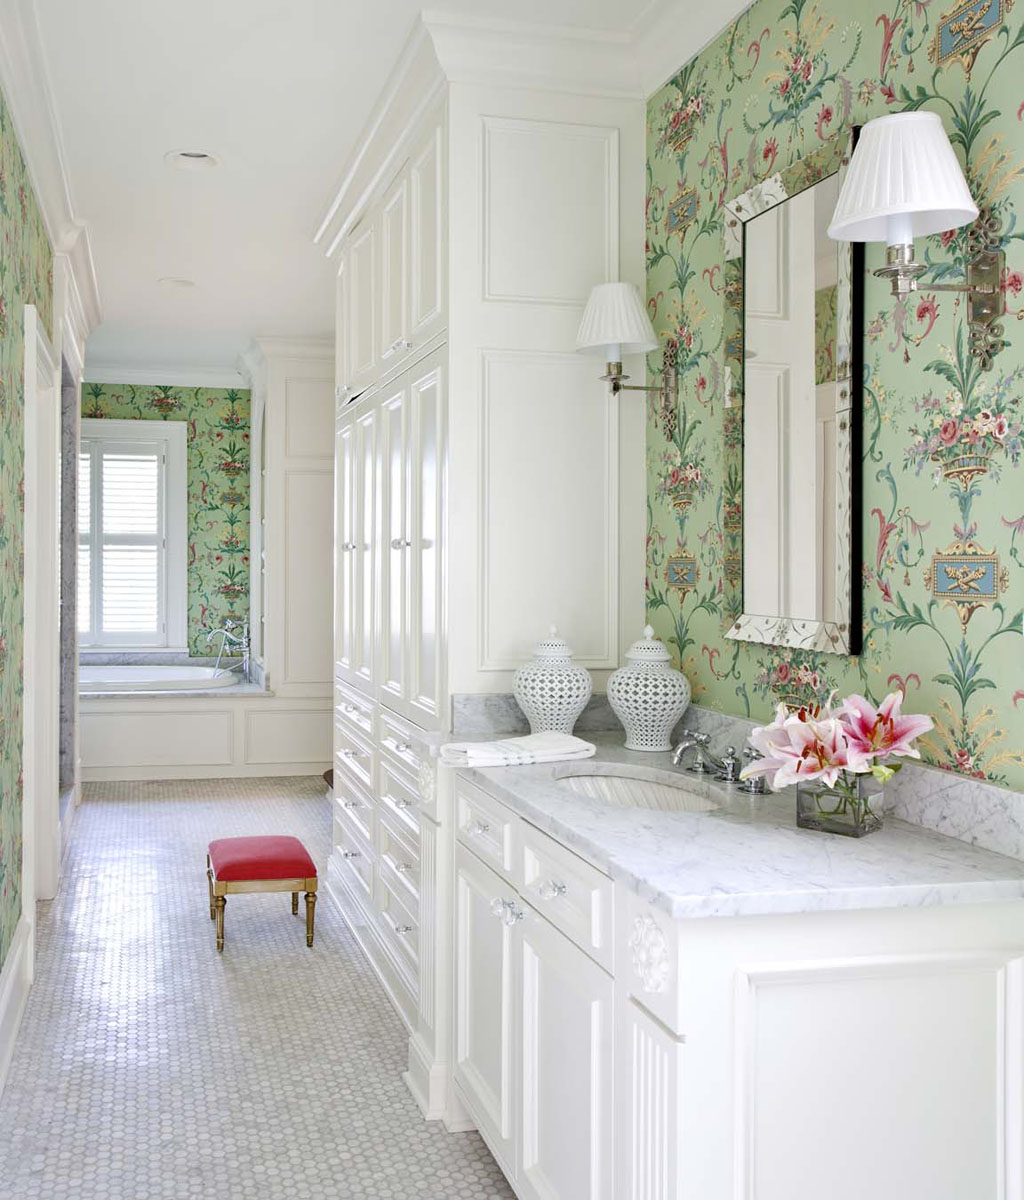 Thibaut Wallpaper Bathroom Jpg Source Girl S Room With Splashes Of Pink IDesignArch Interior Design